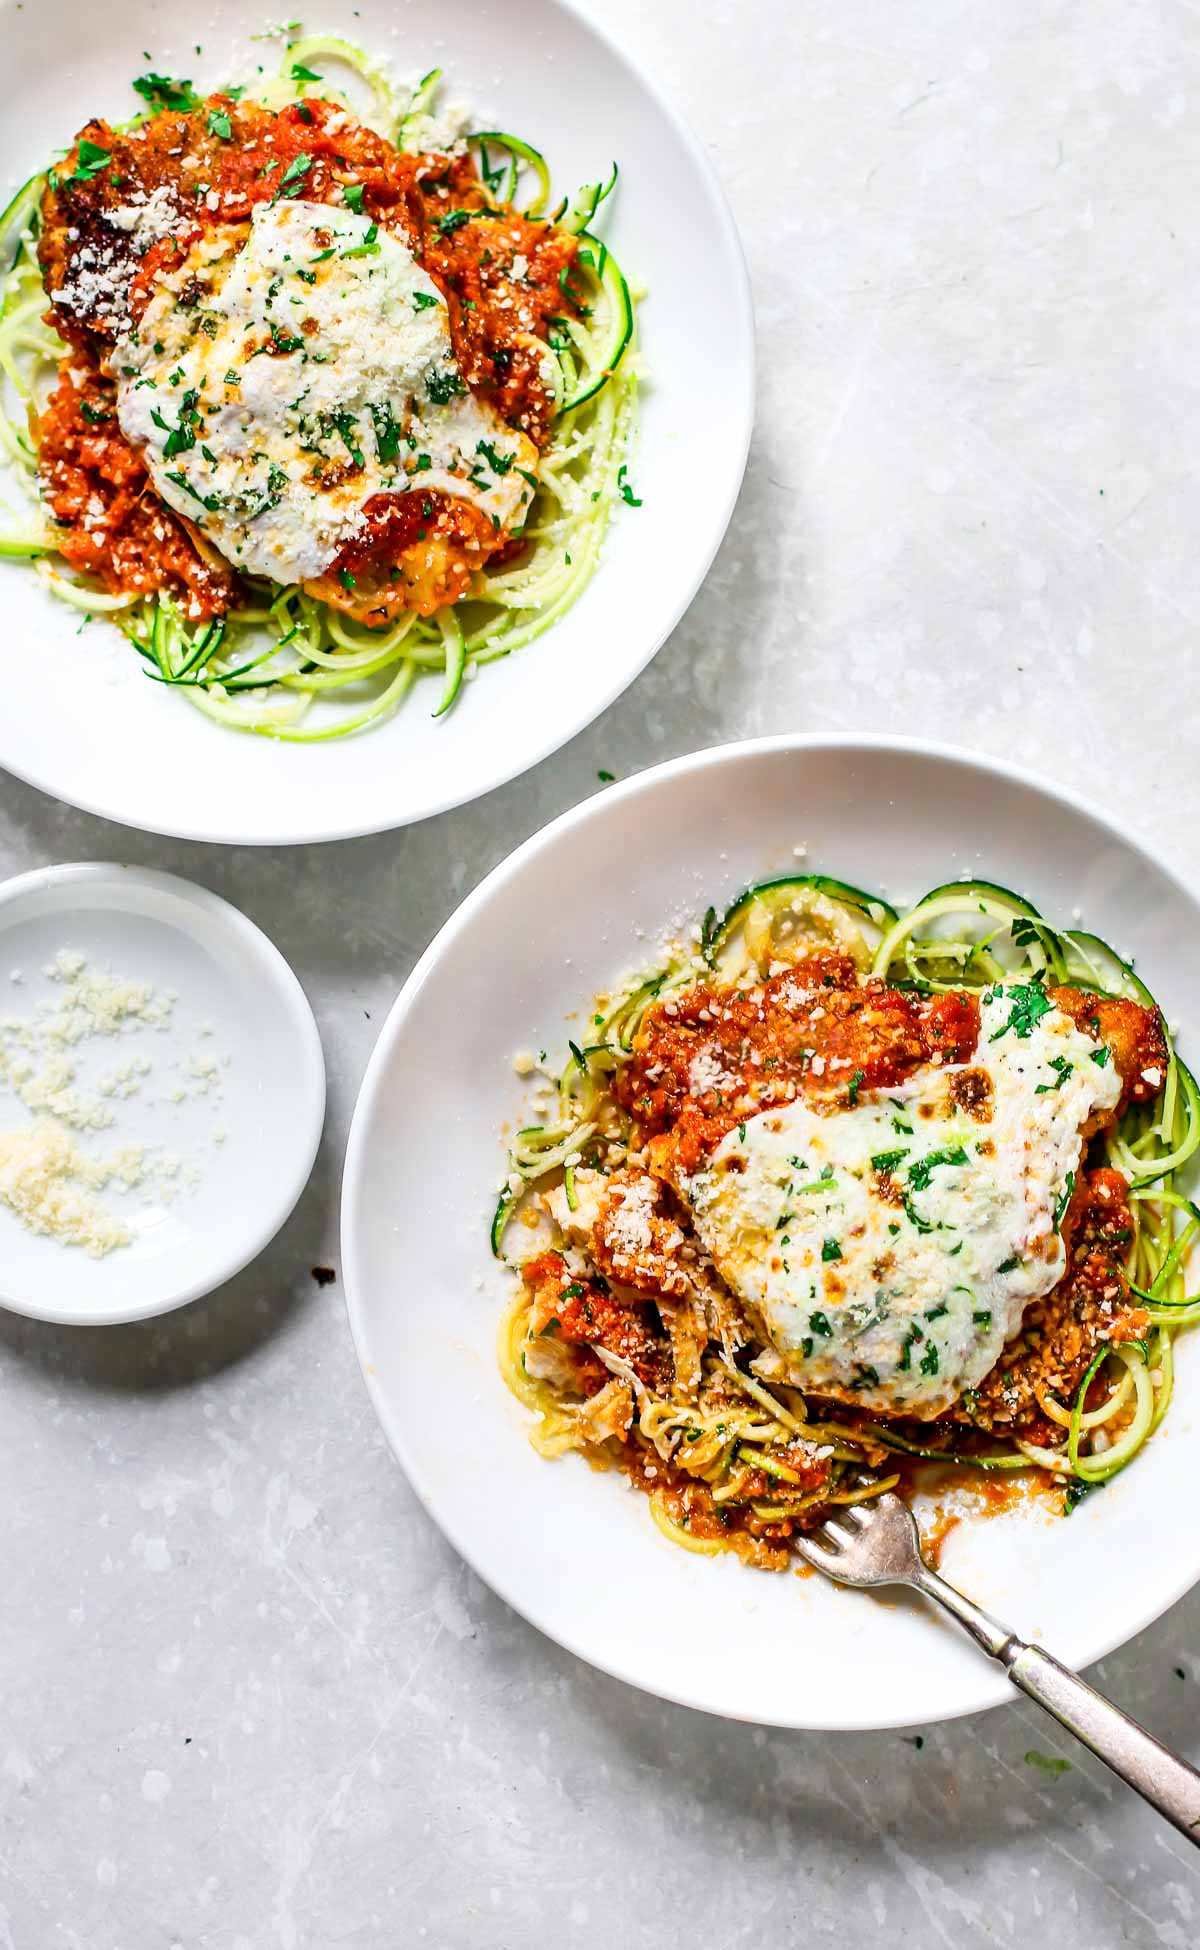 20-Minute Healthy Chicken Parmesan Over Zucchini Noodles (Yummy AND easy!)